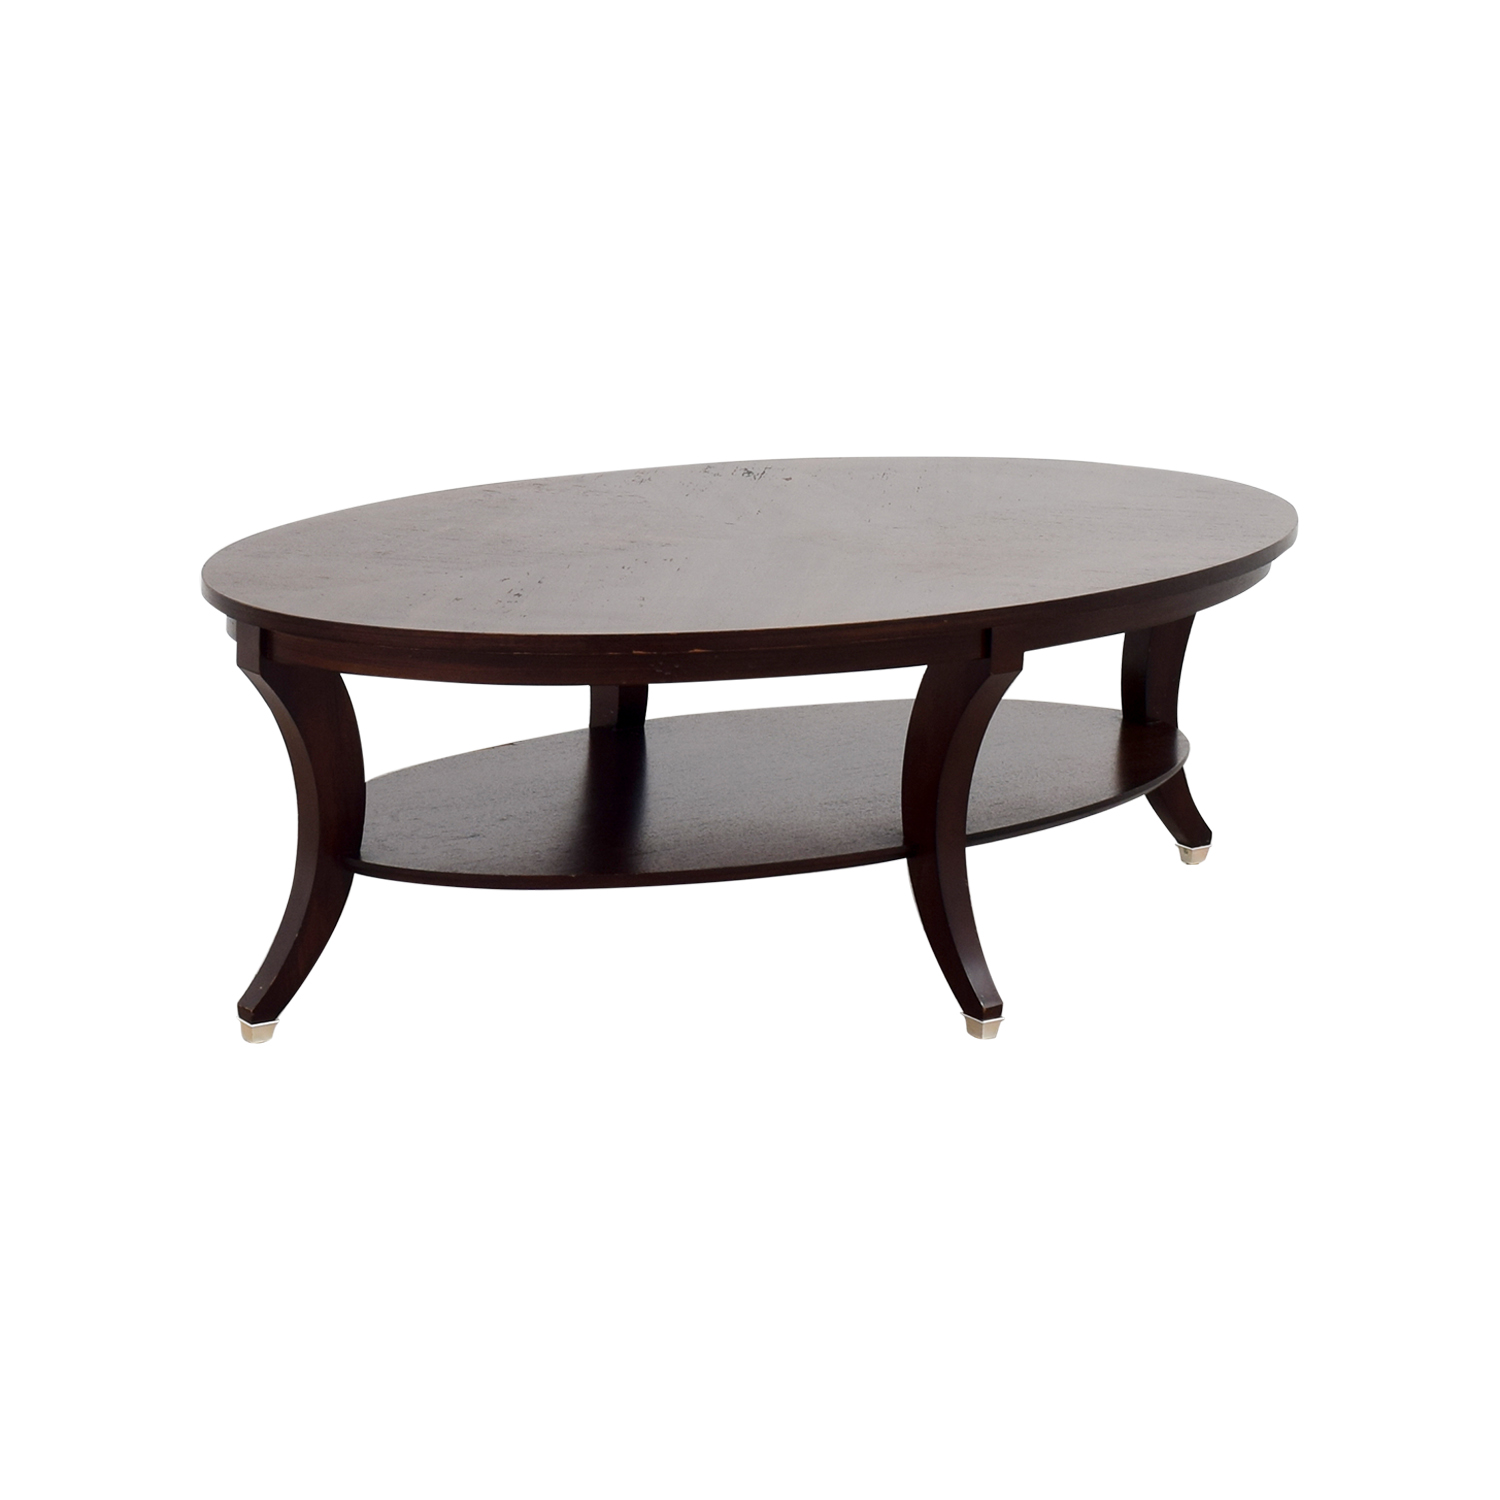 Charming ... Shop Ethan Allen Adler Oval Coffee Table Ethan Allen Tables ...